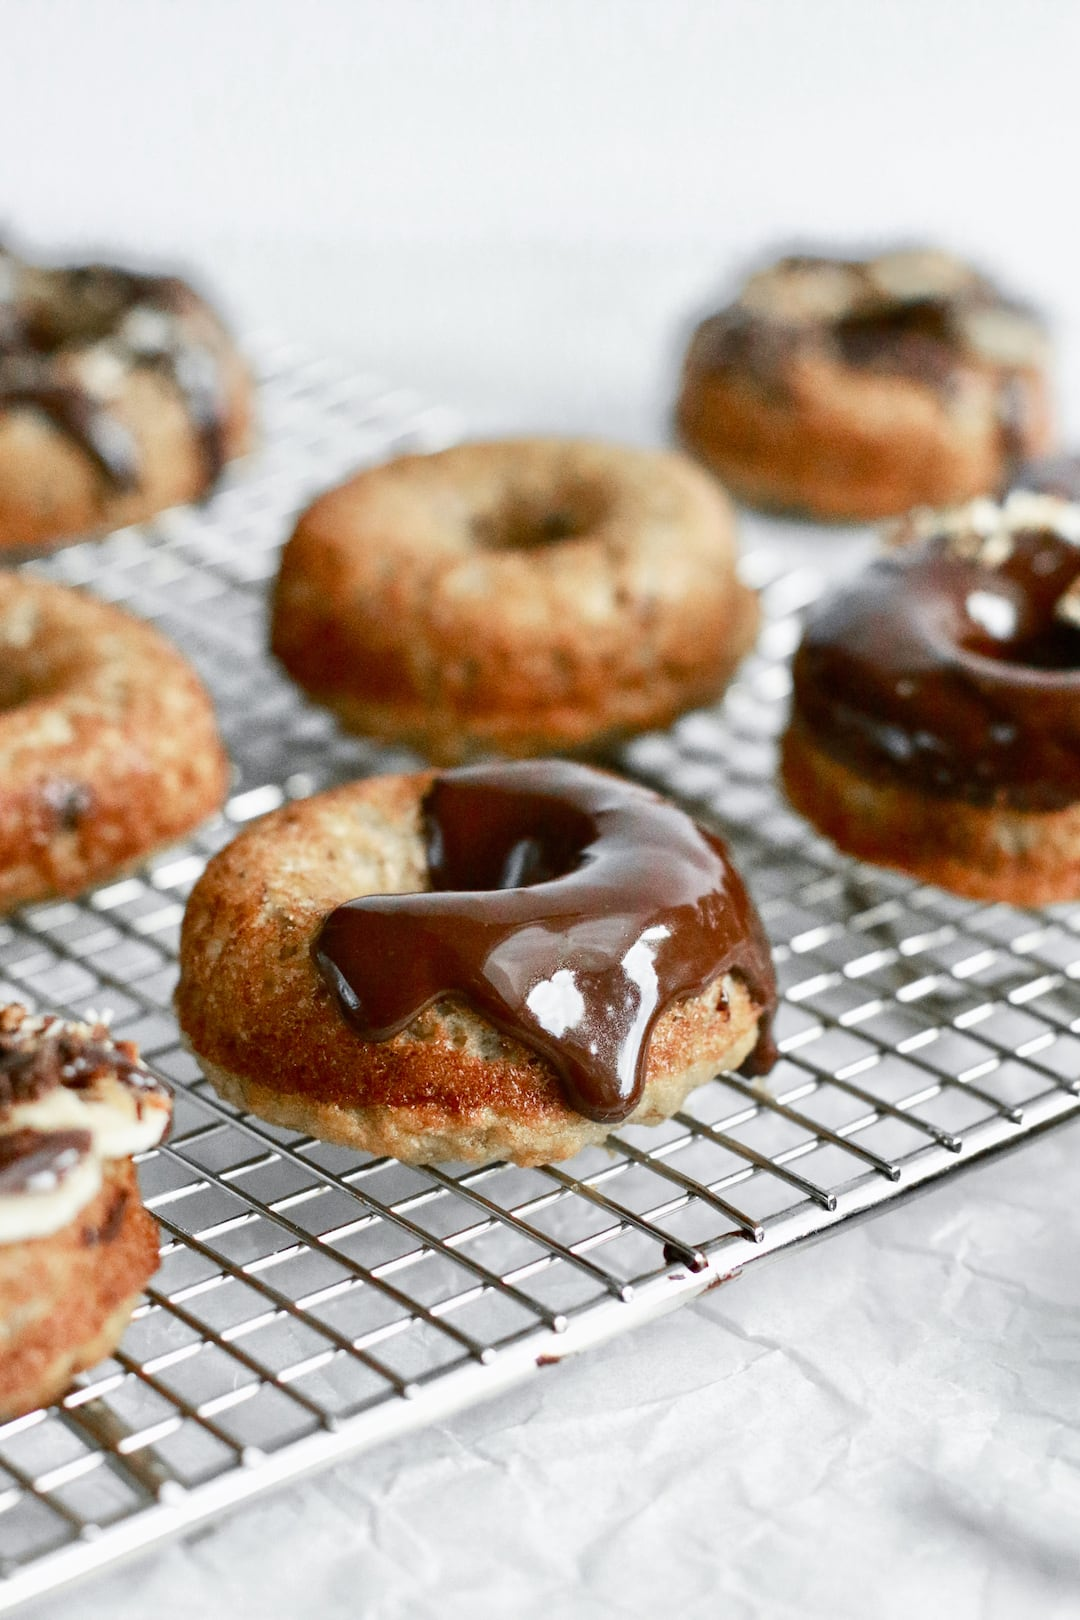 Naturally sweetened chocolate glaze pouring over a healthy banana bread donut